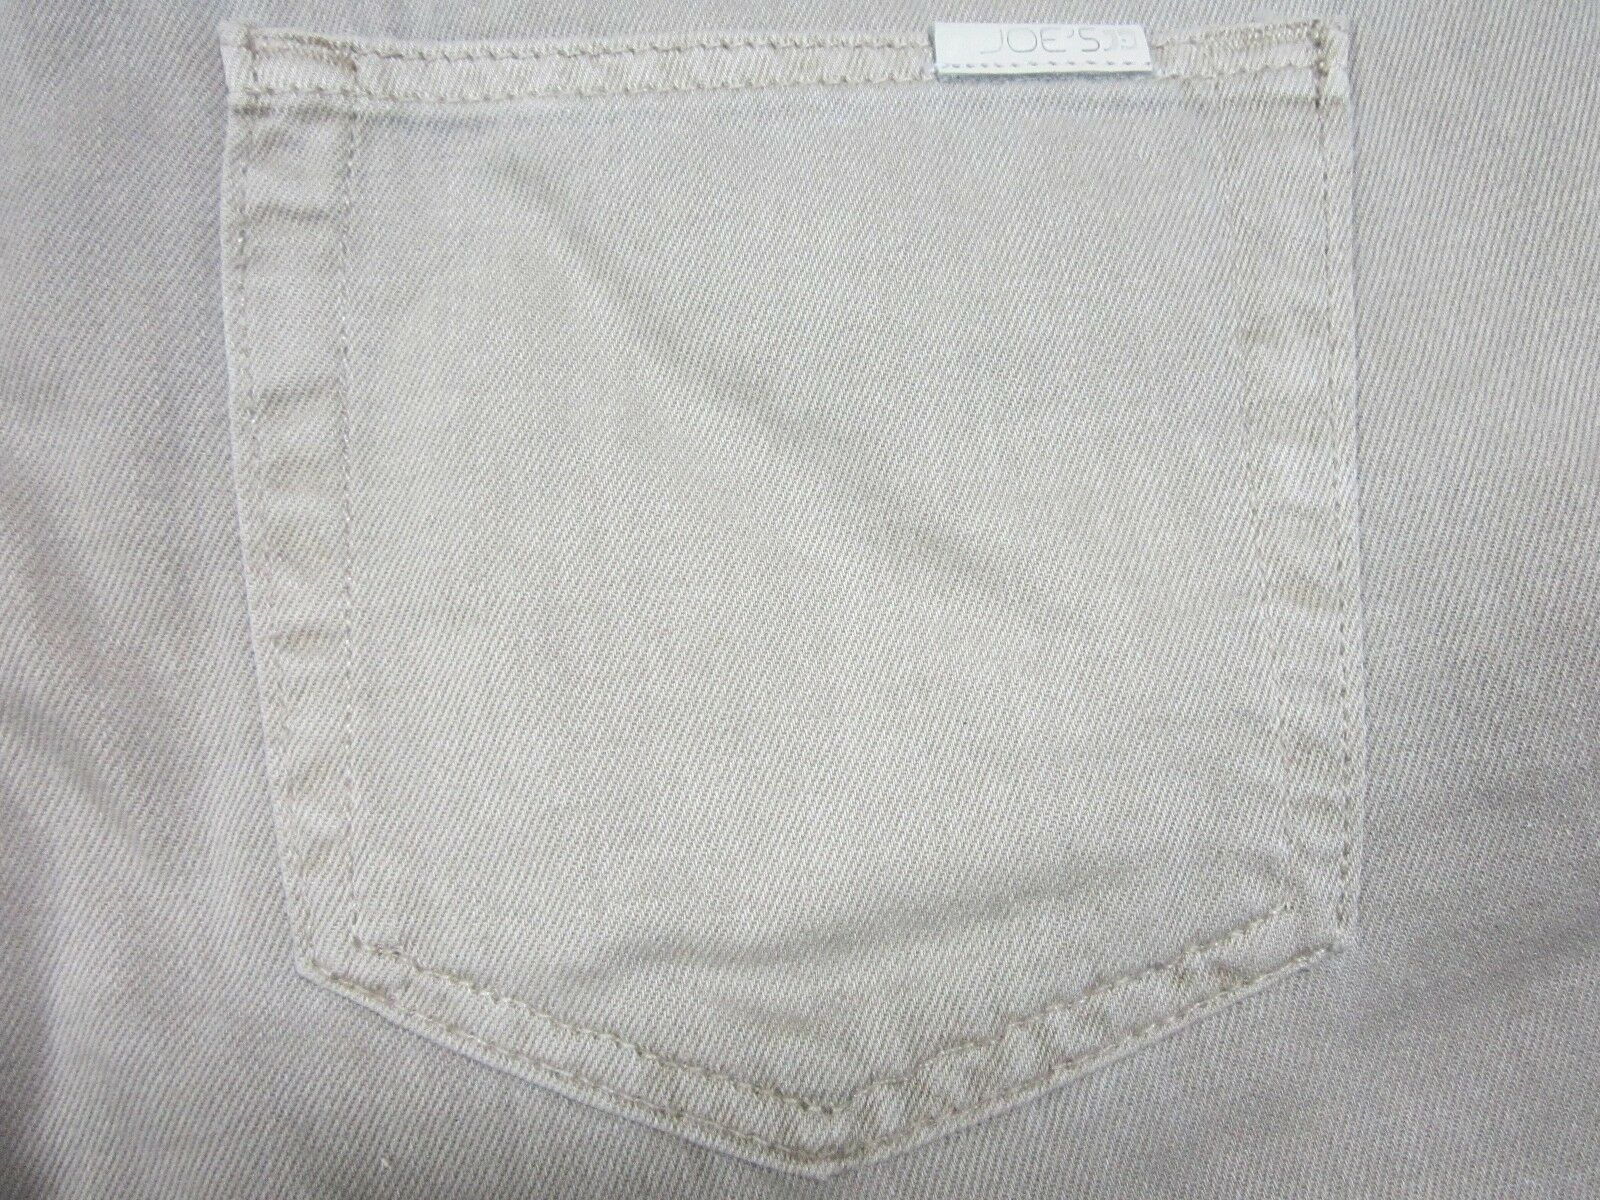 JOES JEANS WOMENS THE HIGH WATER SADDLE SKINNY KHAKI BROWN JEAN PANTS SIZE 26